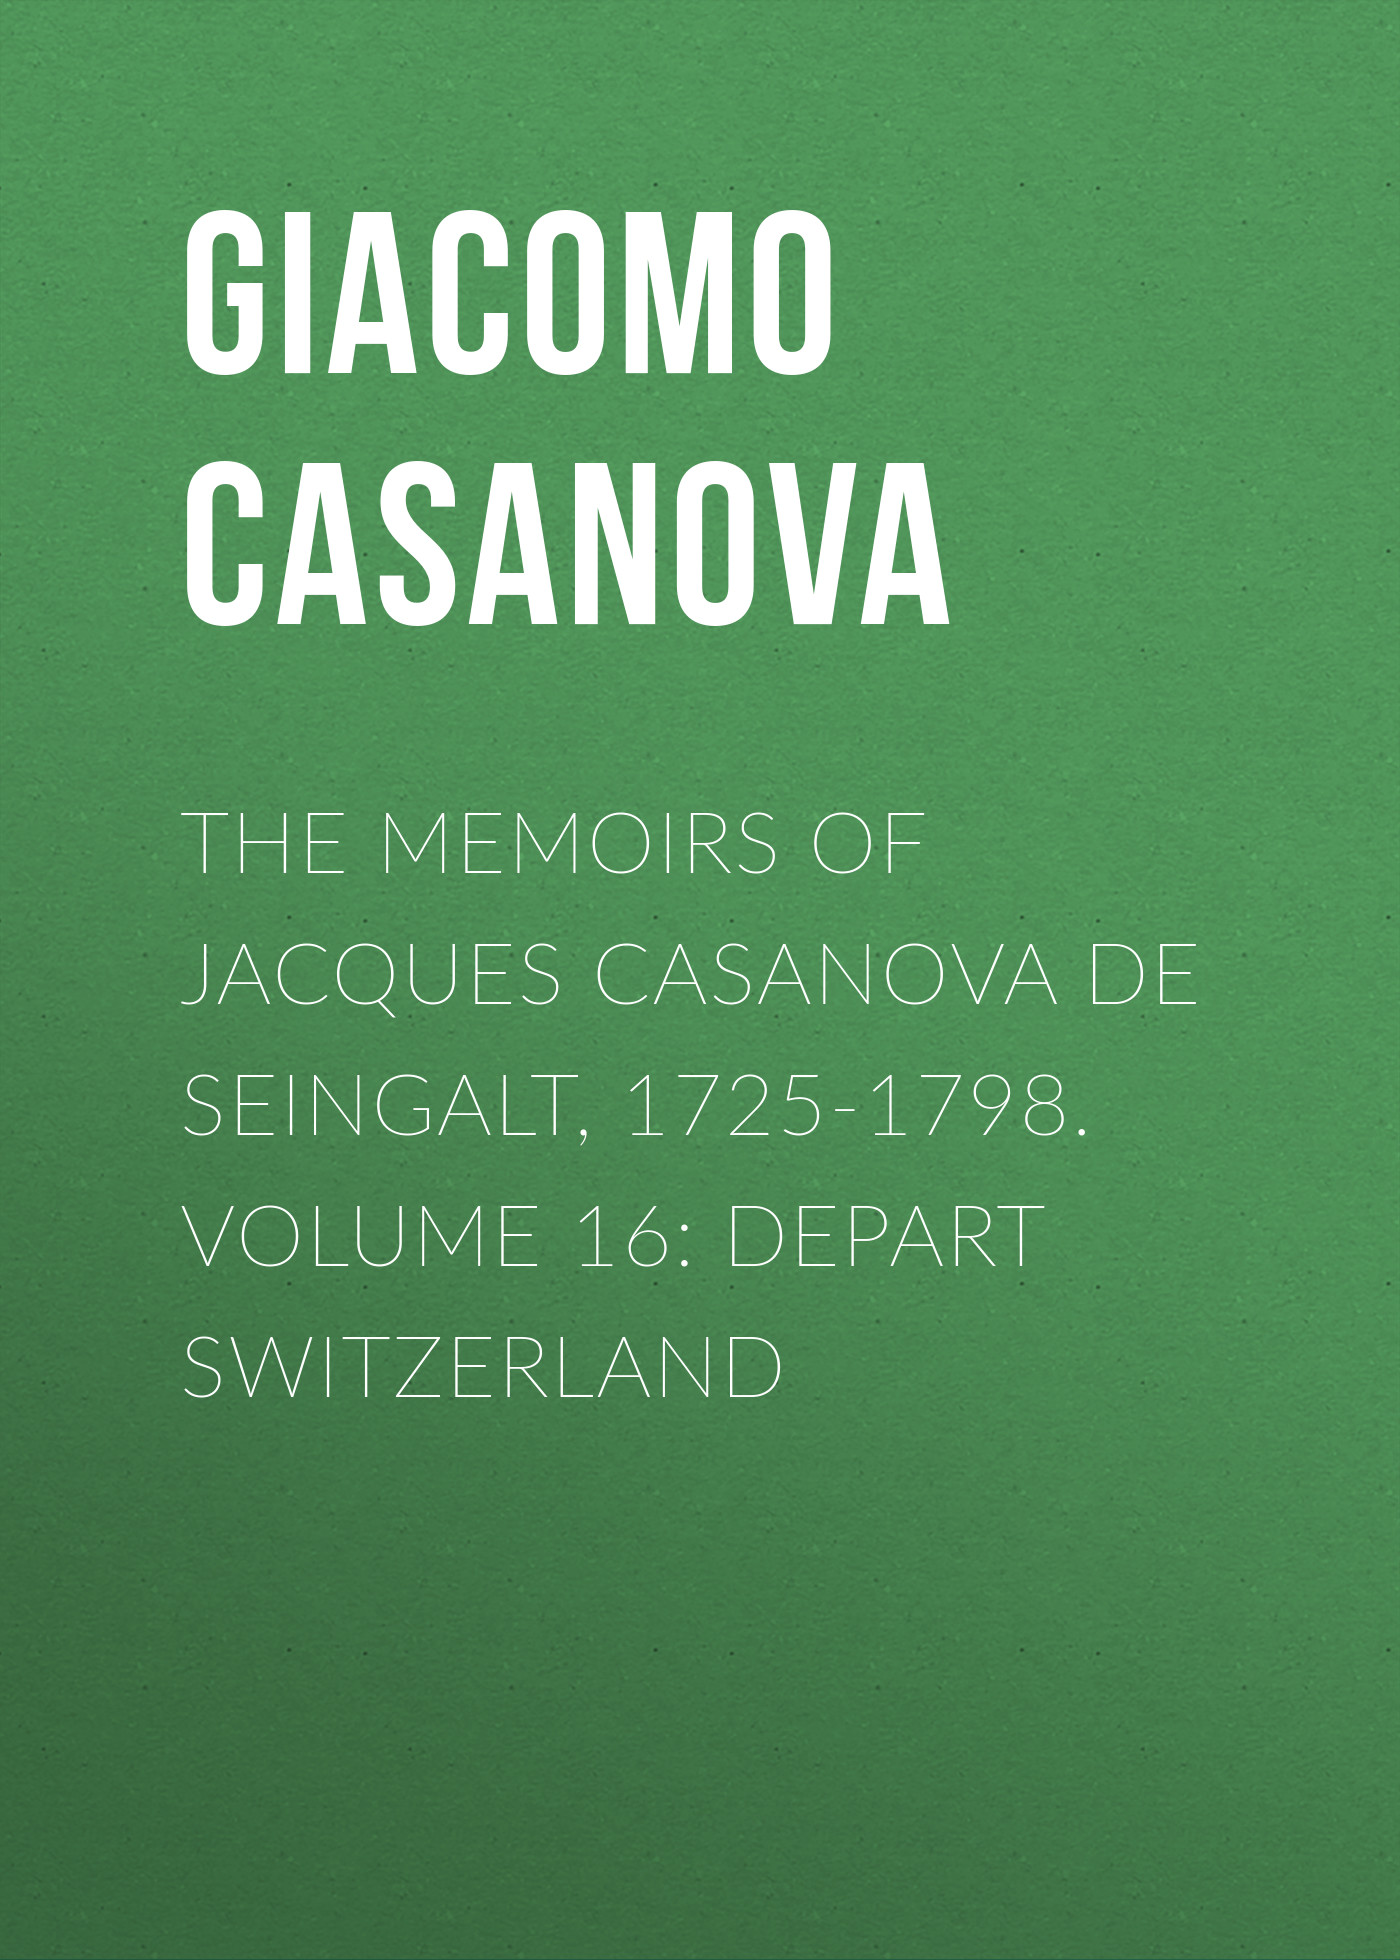 Giacomo Casanova The Memoirs of Jacques Casanova de Seingalt, 1725-1798. Volume 16: Depart Switzerland giacomo casanova the memoirs of jacques casanova de seingalt 1725 1798 volume 30 old age and death